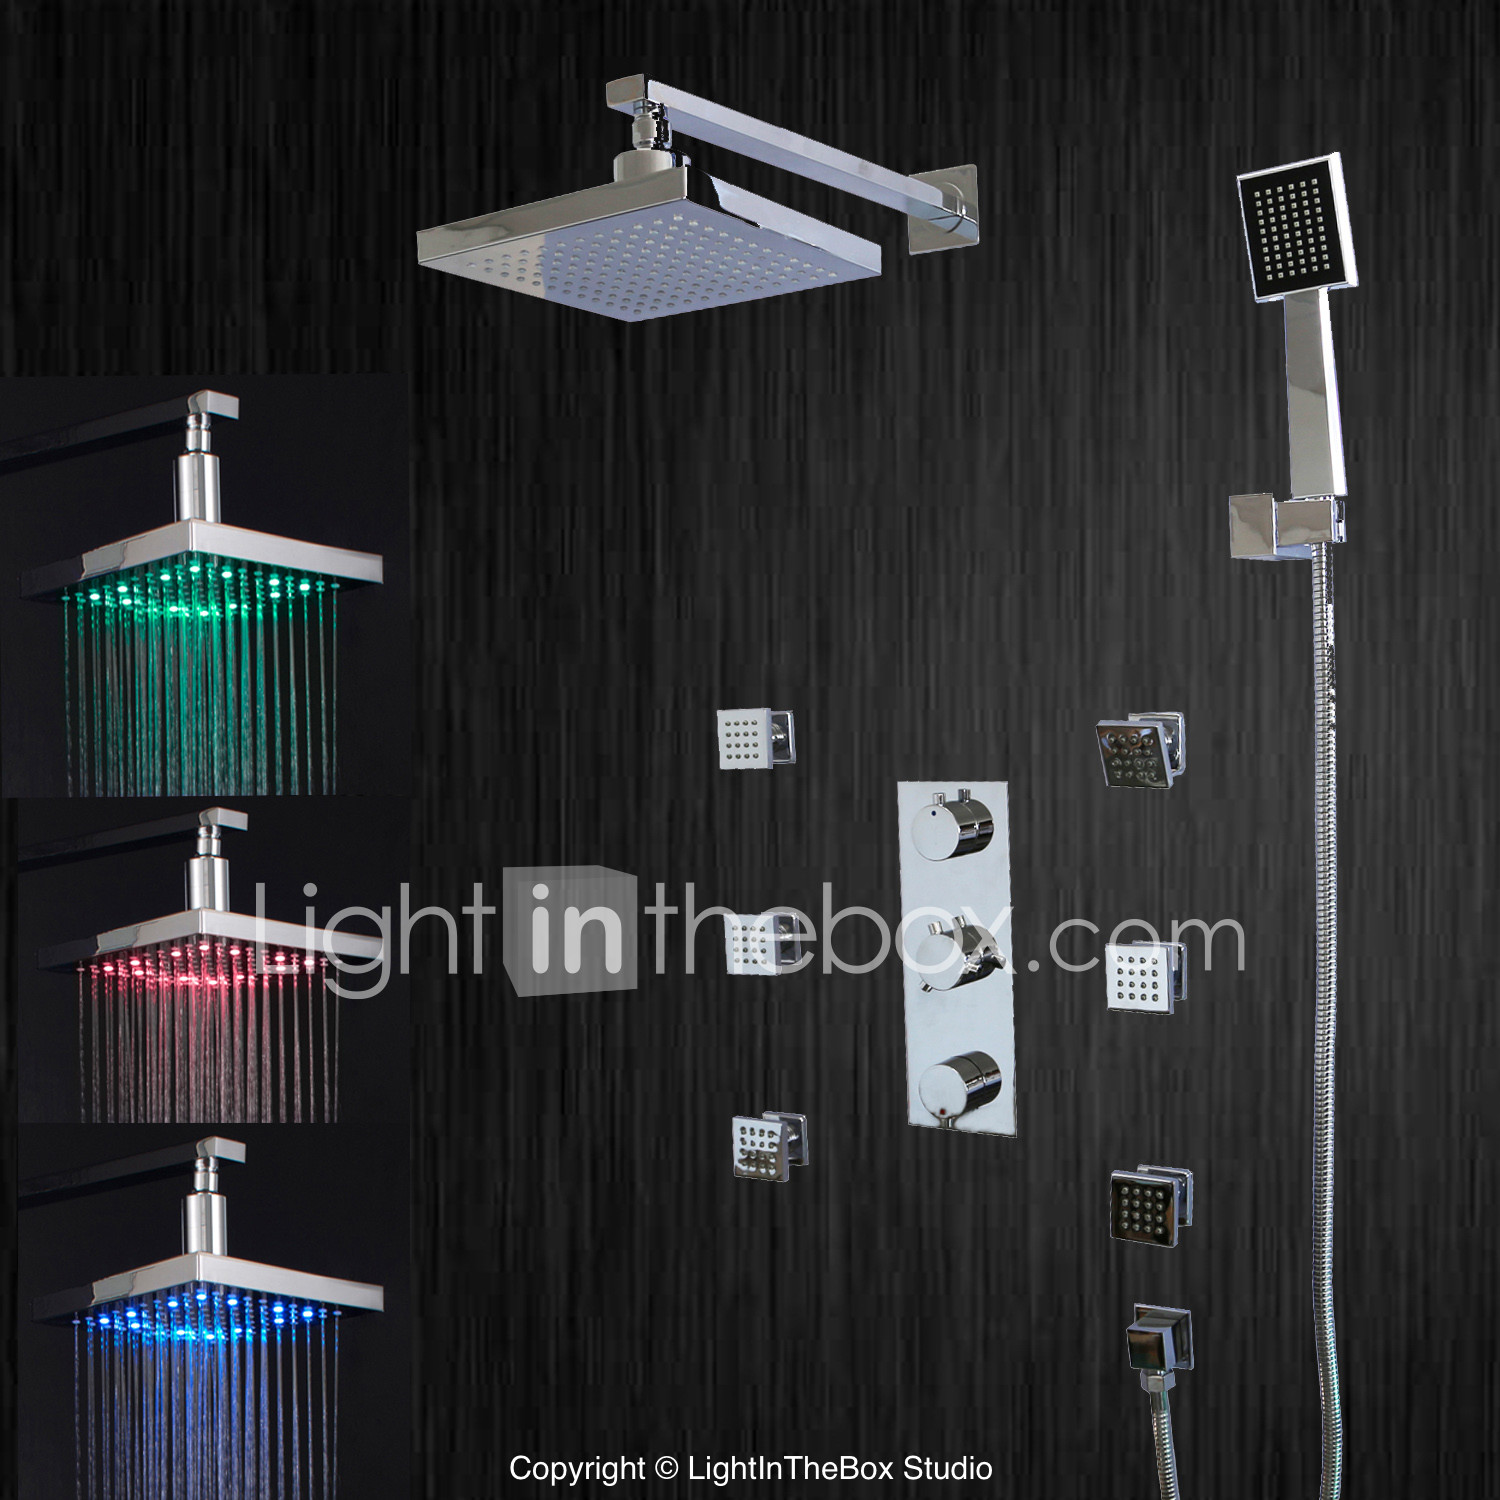 LED Waterfall Rain Shower Head Valve Mixer Tap Faucet Hand Shower Sprayer Chrome